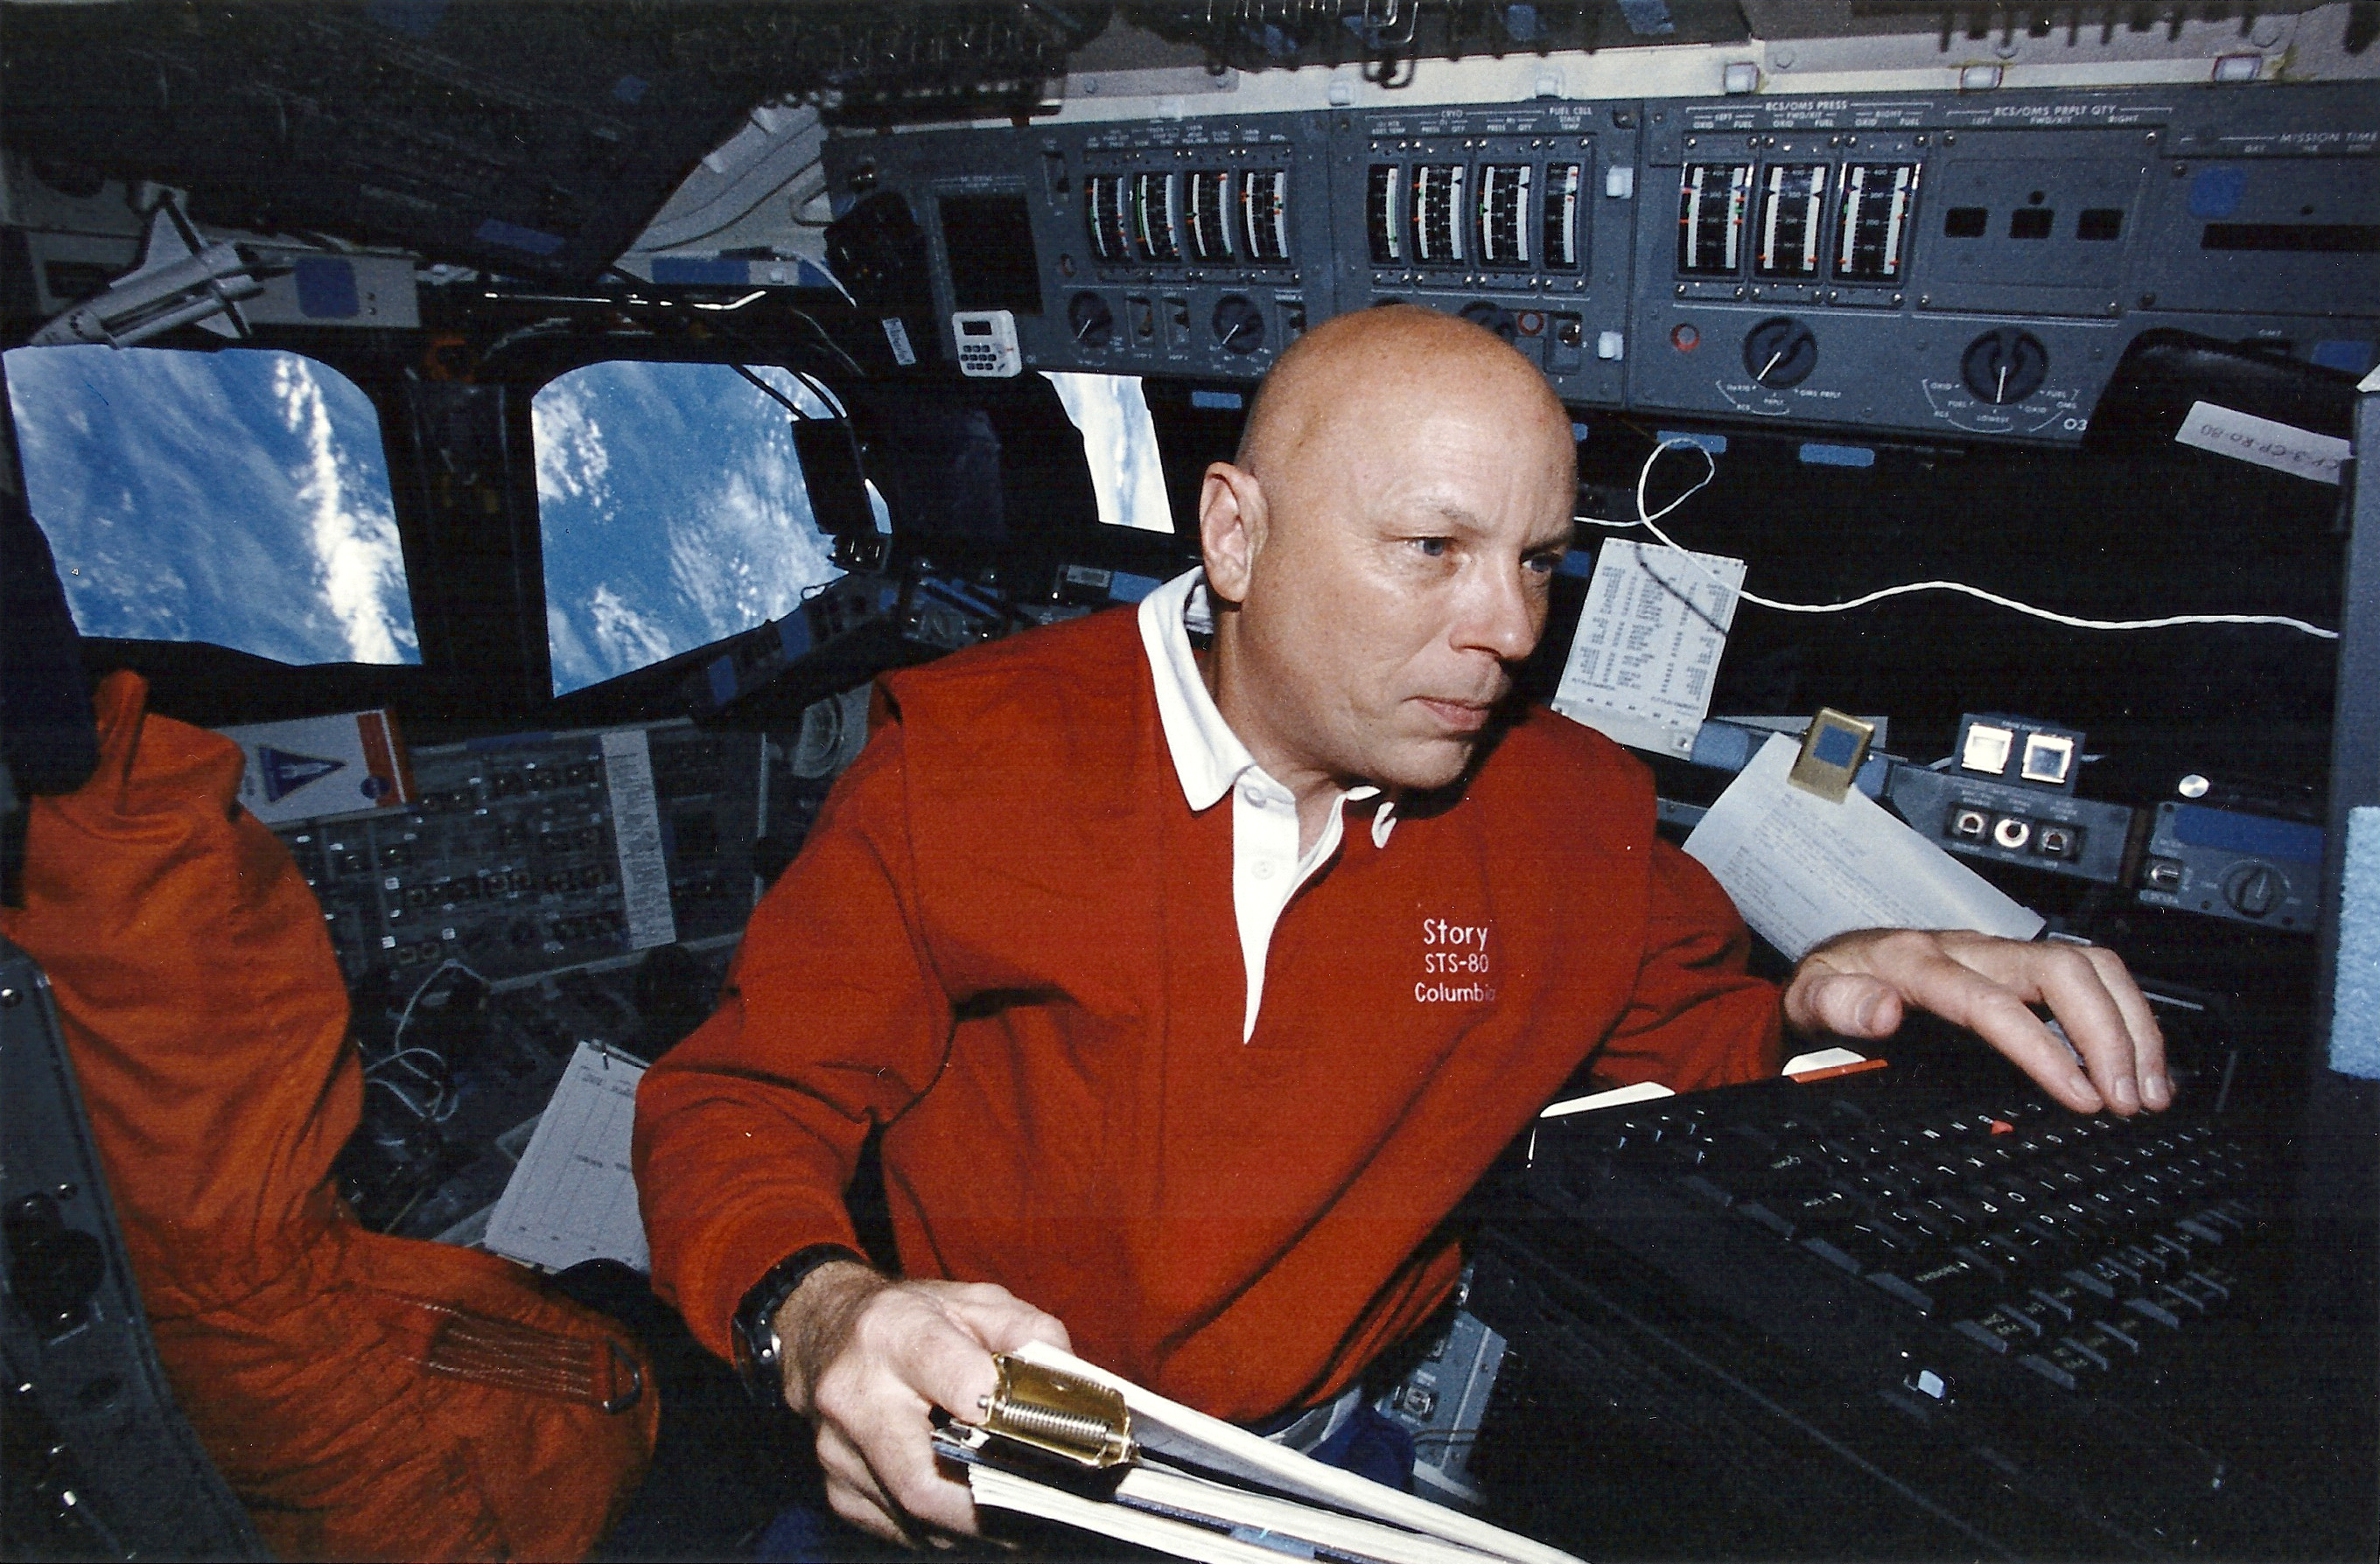 Story Musgrave monitors the health and status of the Wake Shield Facility-3 spacecraft from Columbia's flight deck. (NASA STS080-326-018)